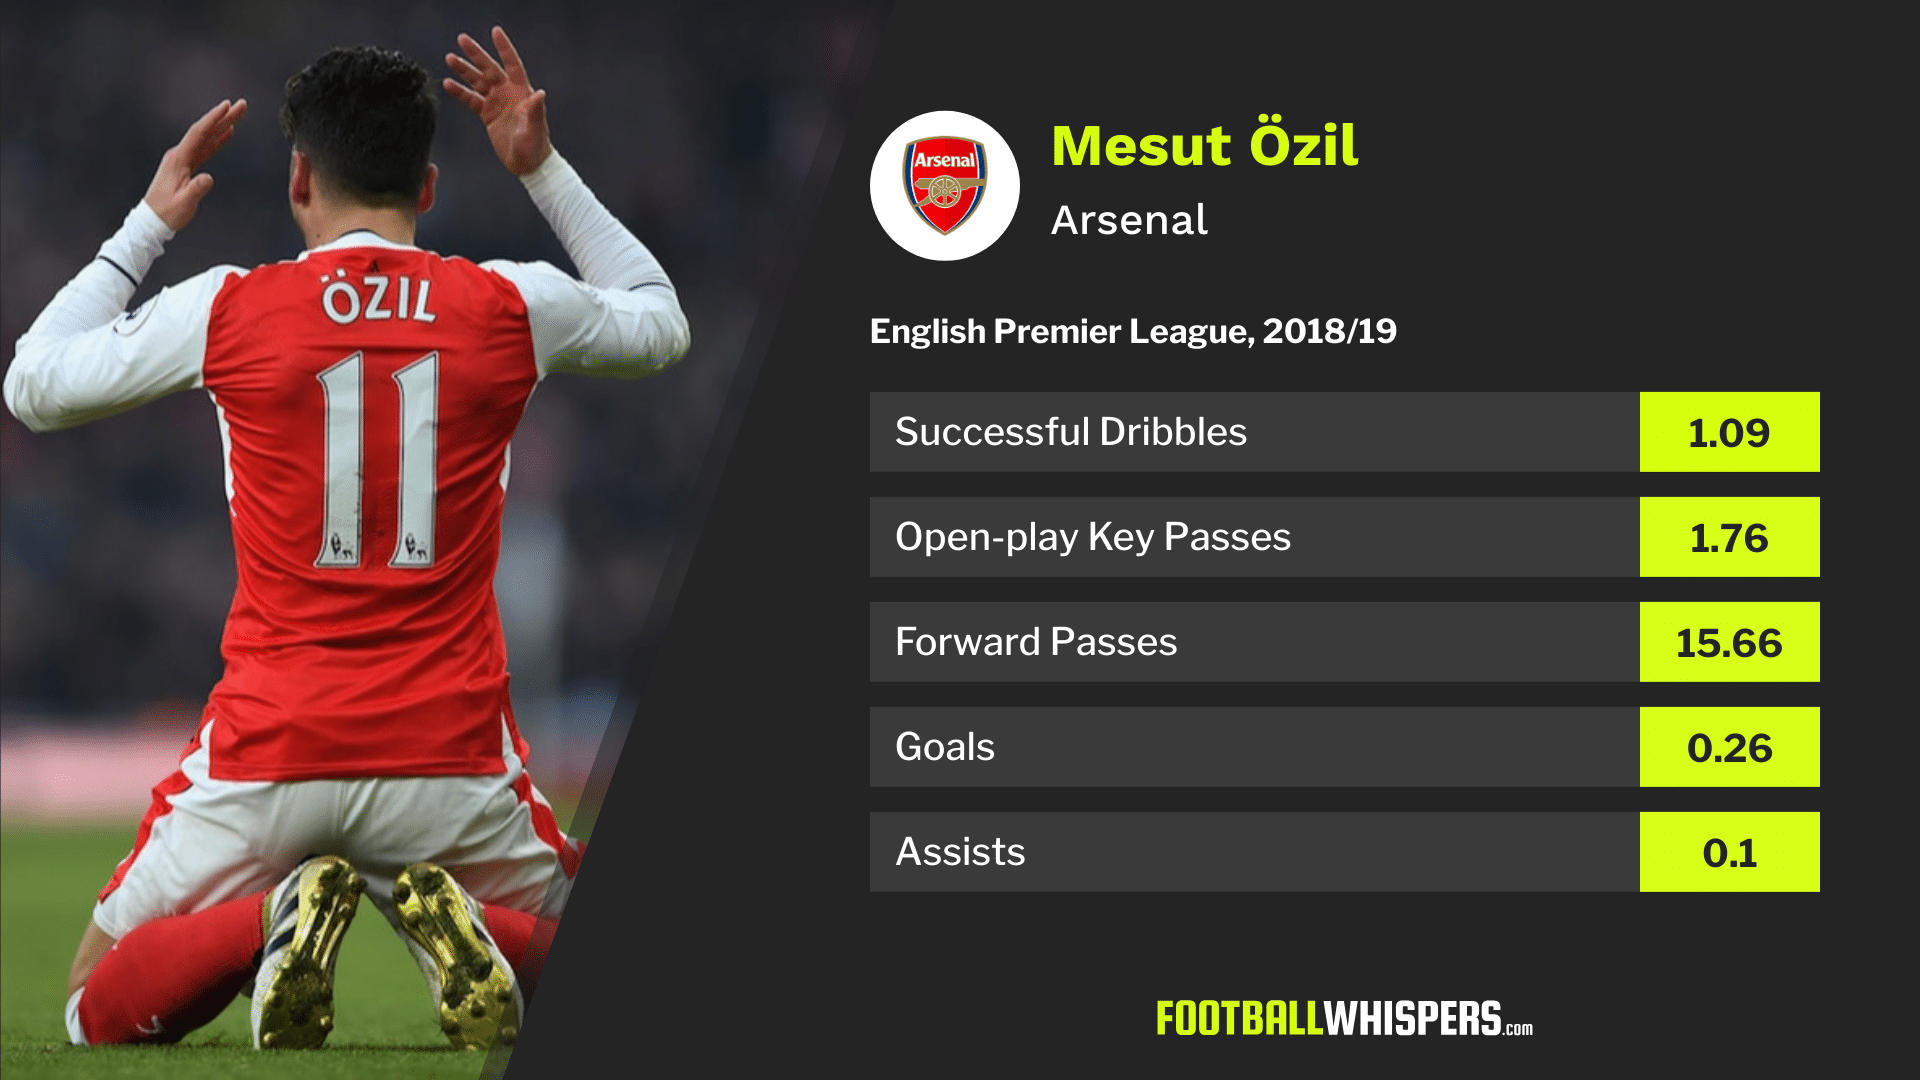 Arsenal attacker Mesut Özil's 2018/19 Premier League stats